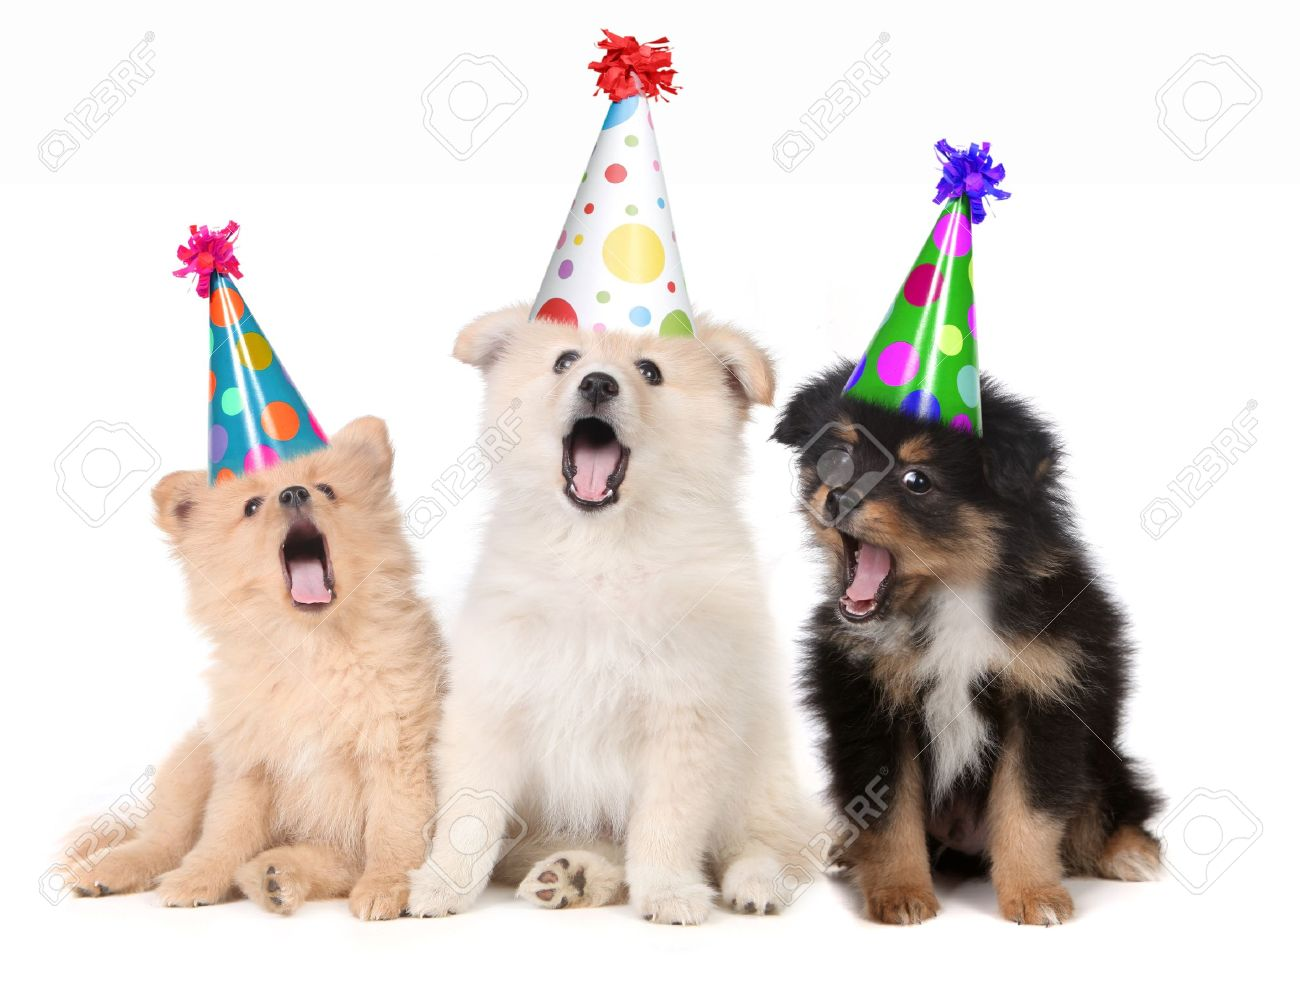 Humorous Puppies Singing Happy Birthday Song Wearing Silly Hats Stock Photo